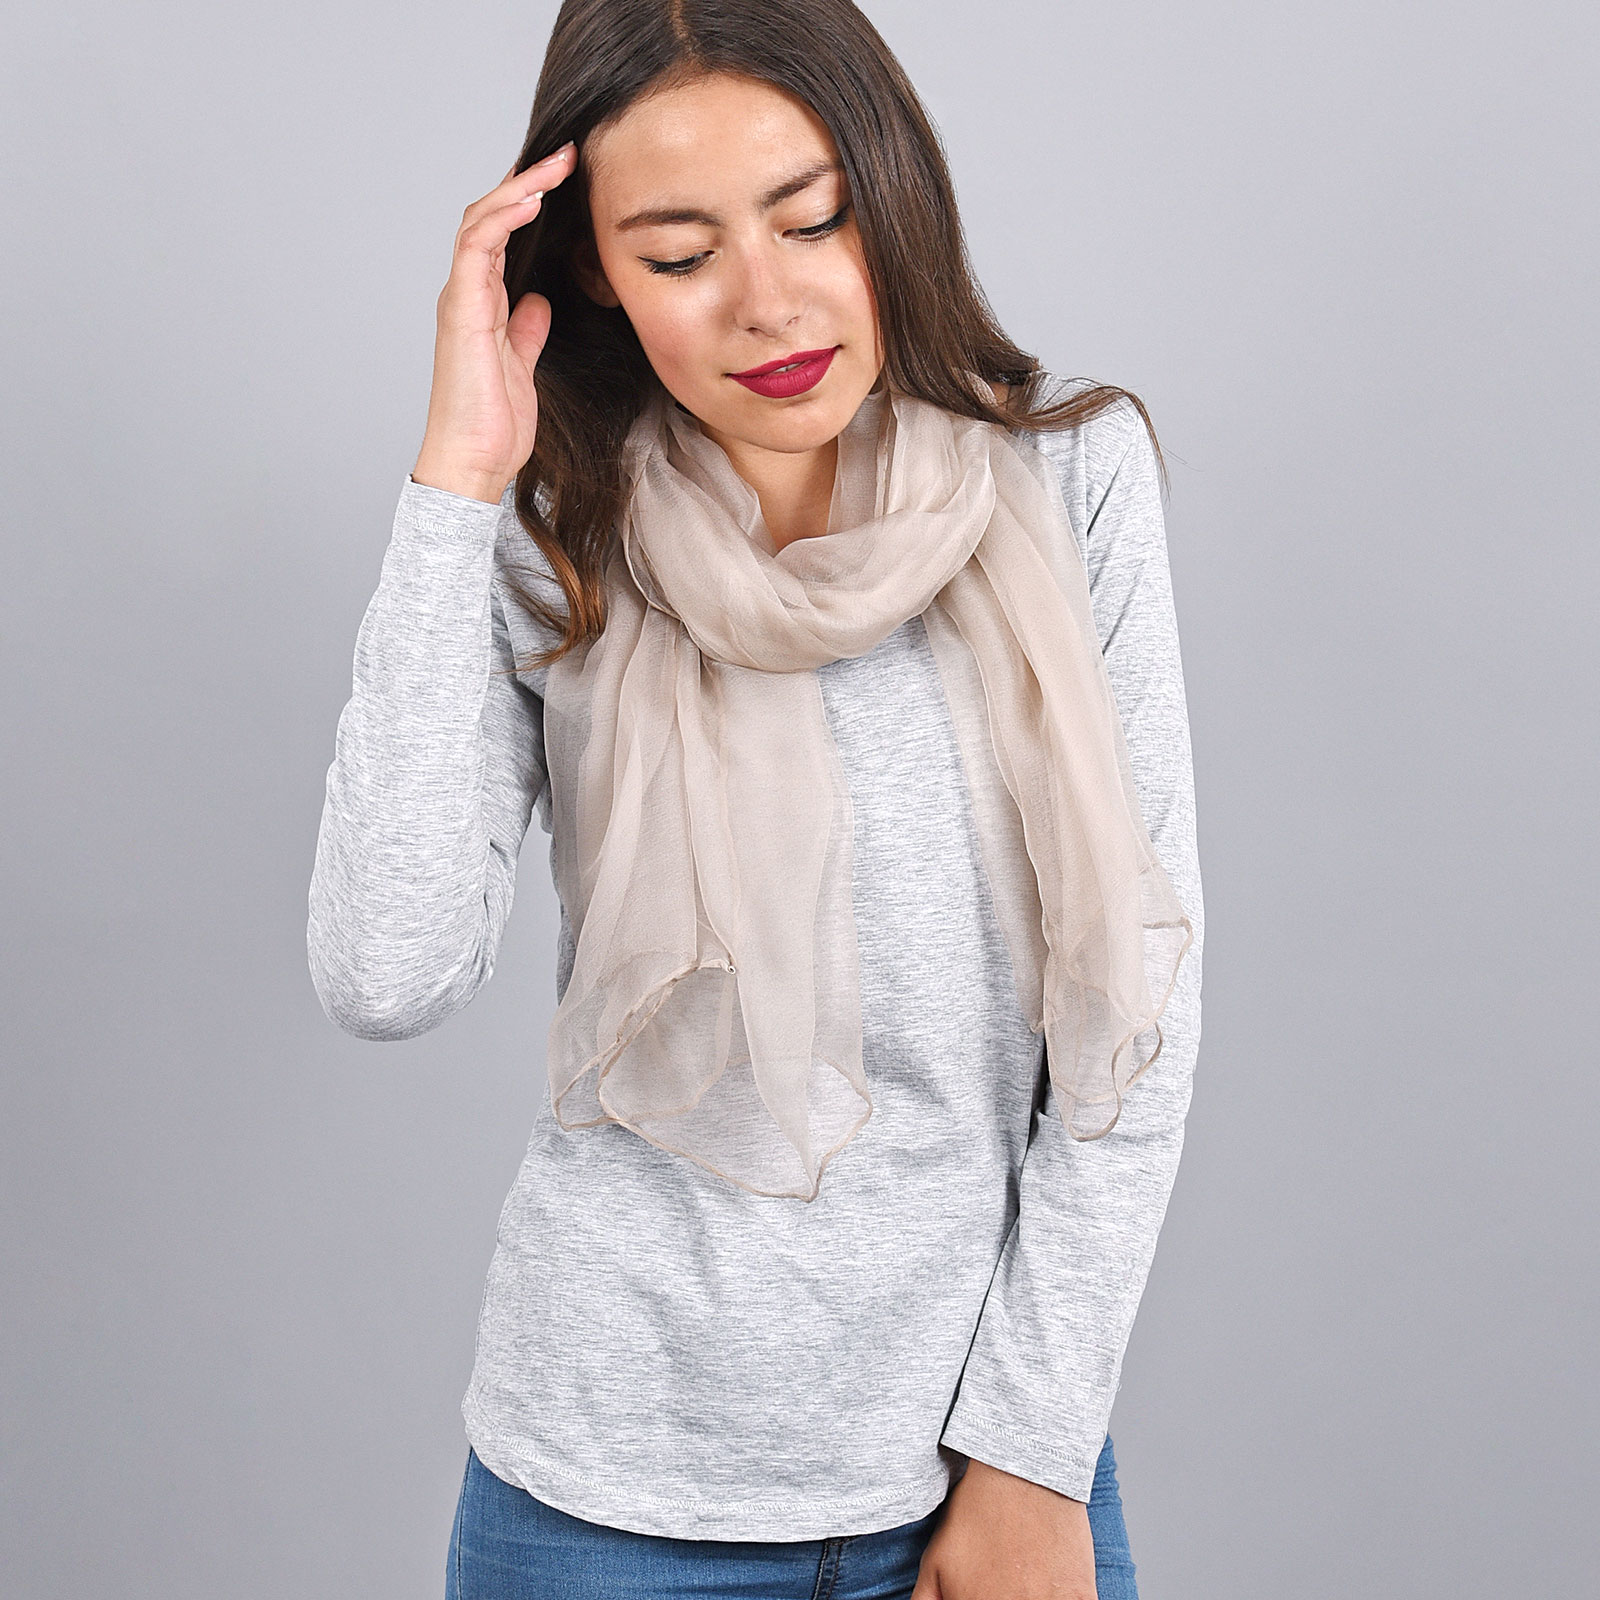 AT-03849-VF16-foulard-mousseline-soie-chataigne